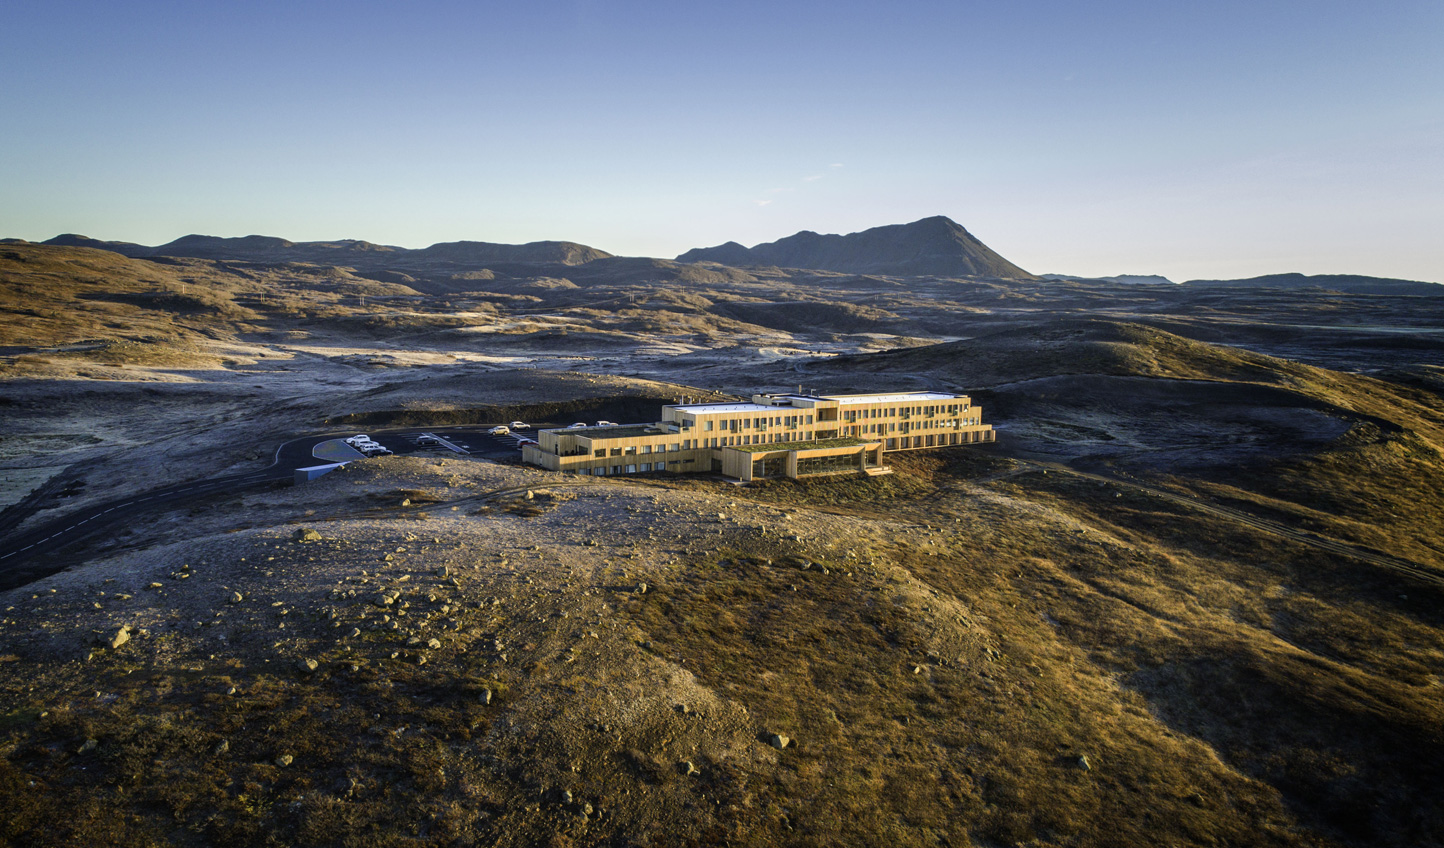 Escape the world for a few days at Fosshotel Myvatn